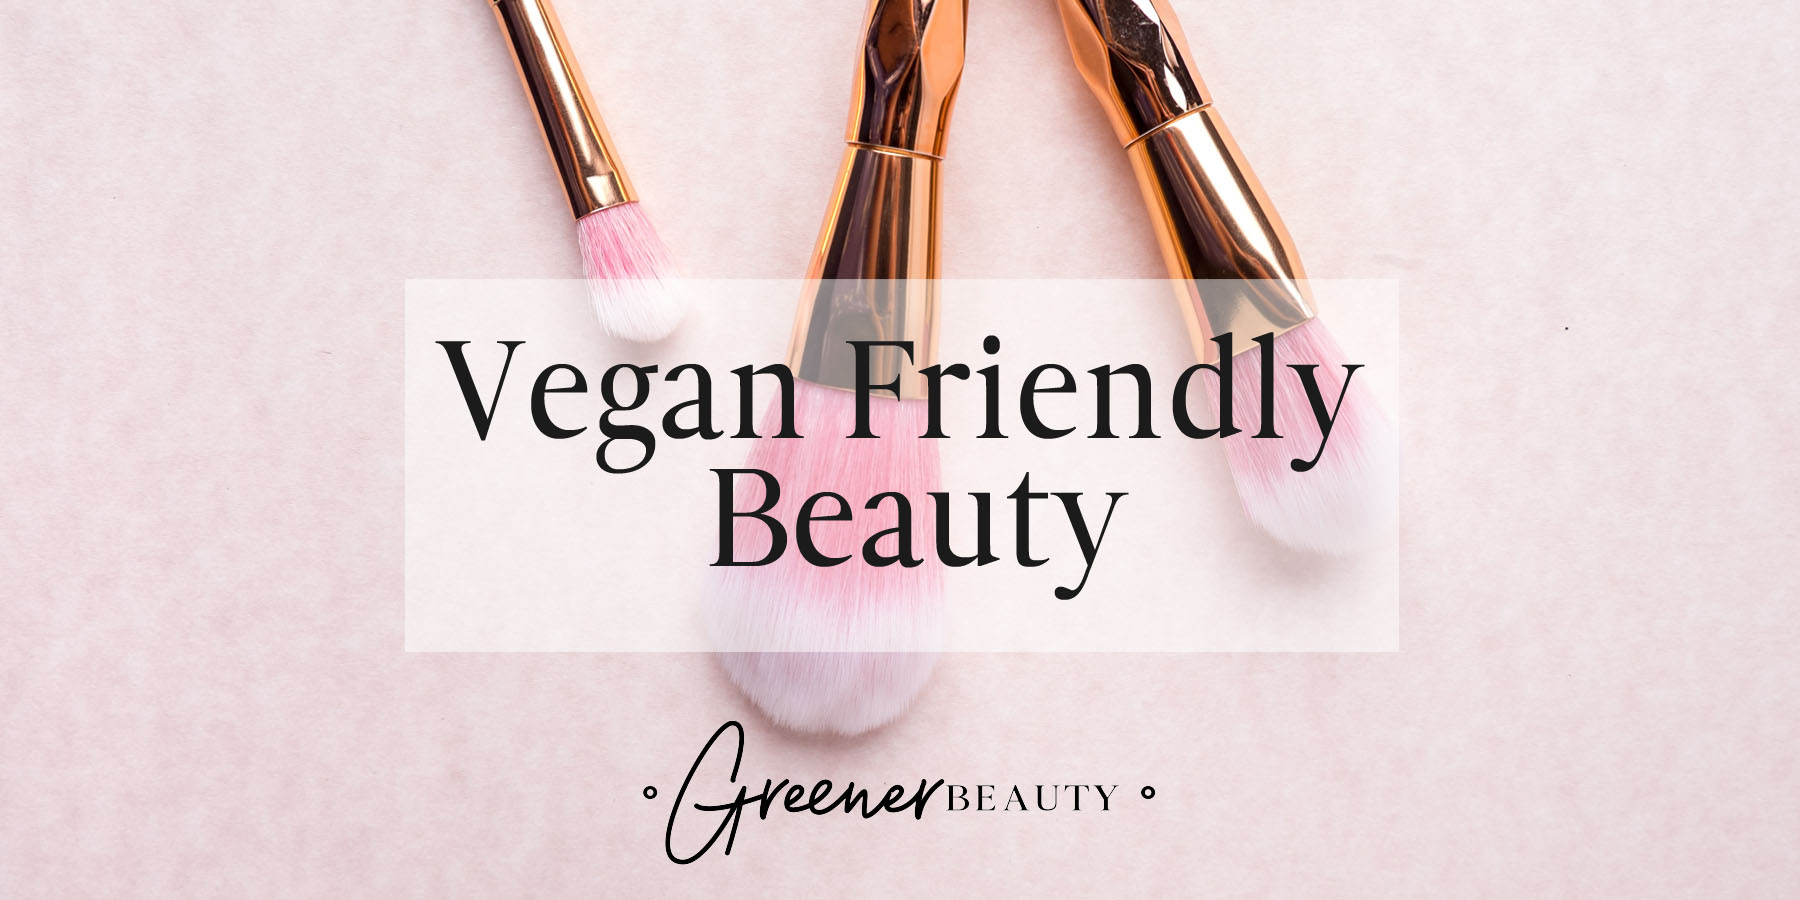 Vegan Friendly Beauty